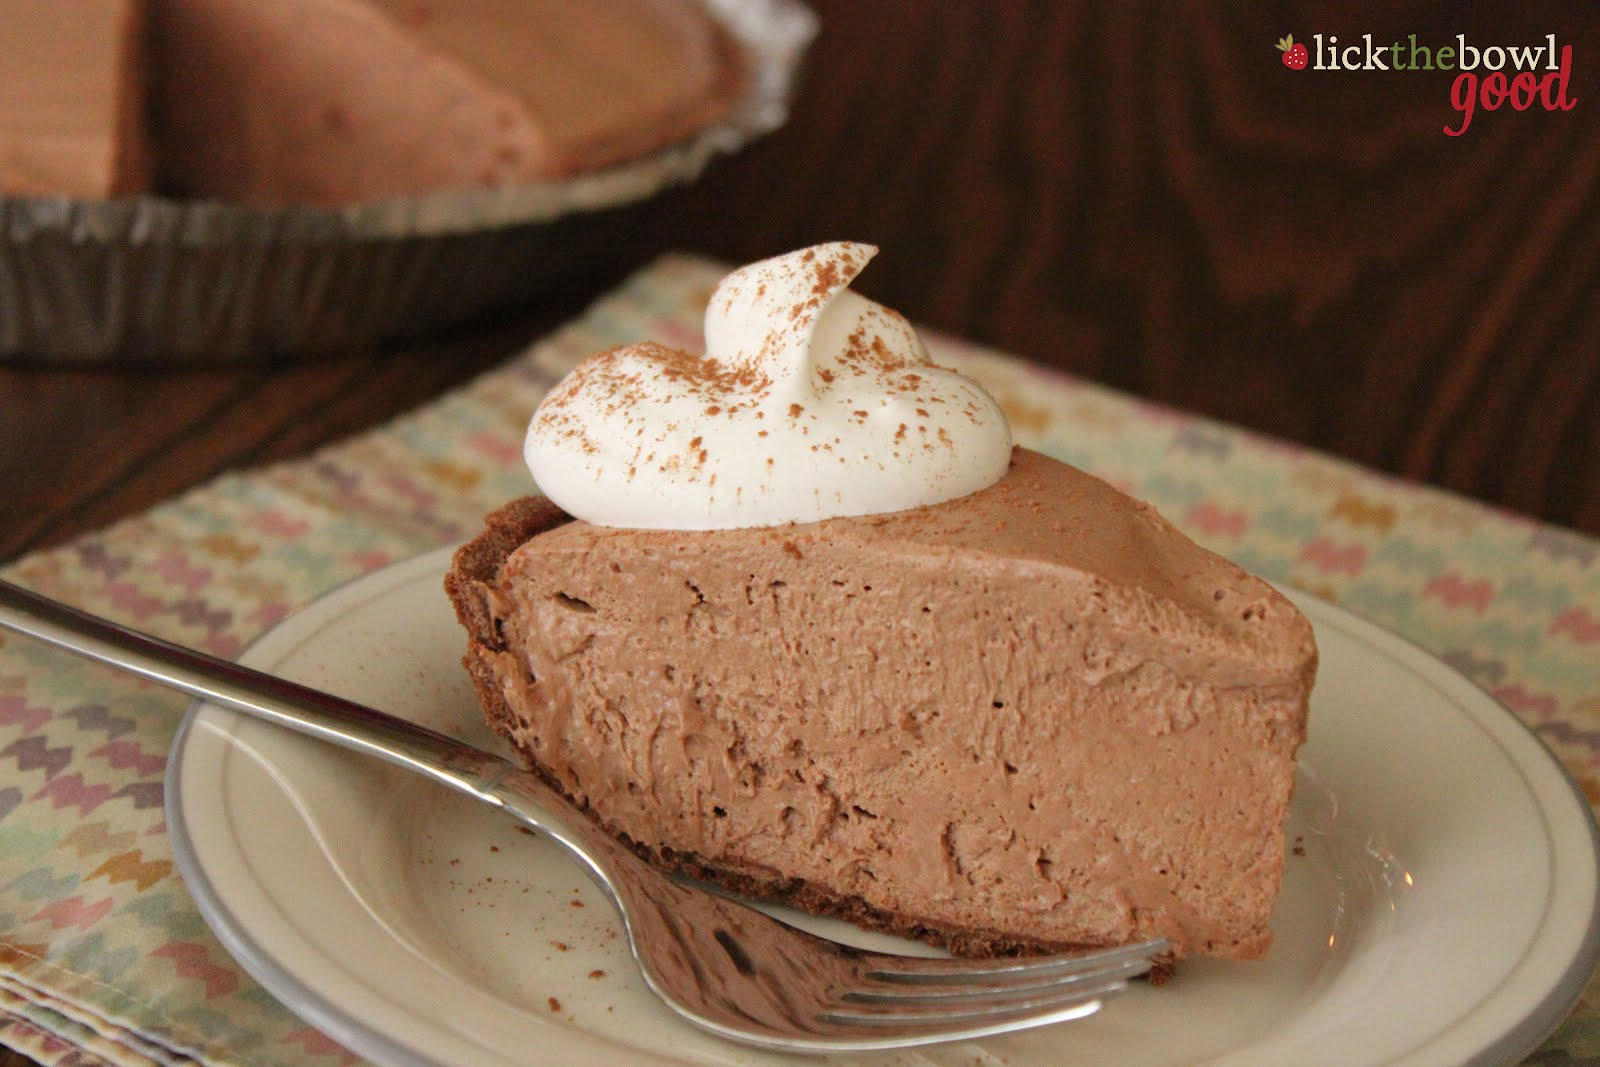 Lick The Bowl Good: Bad Day Pie